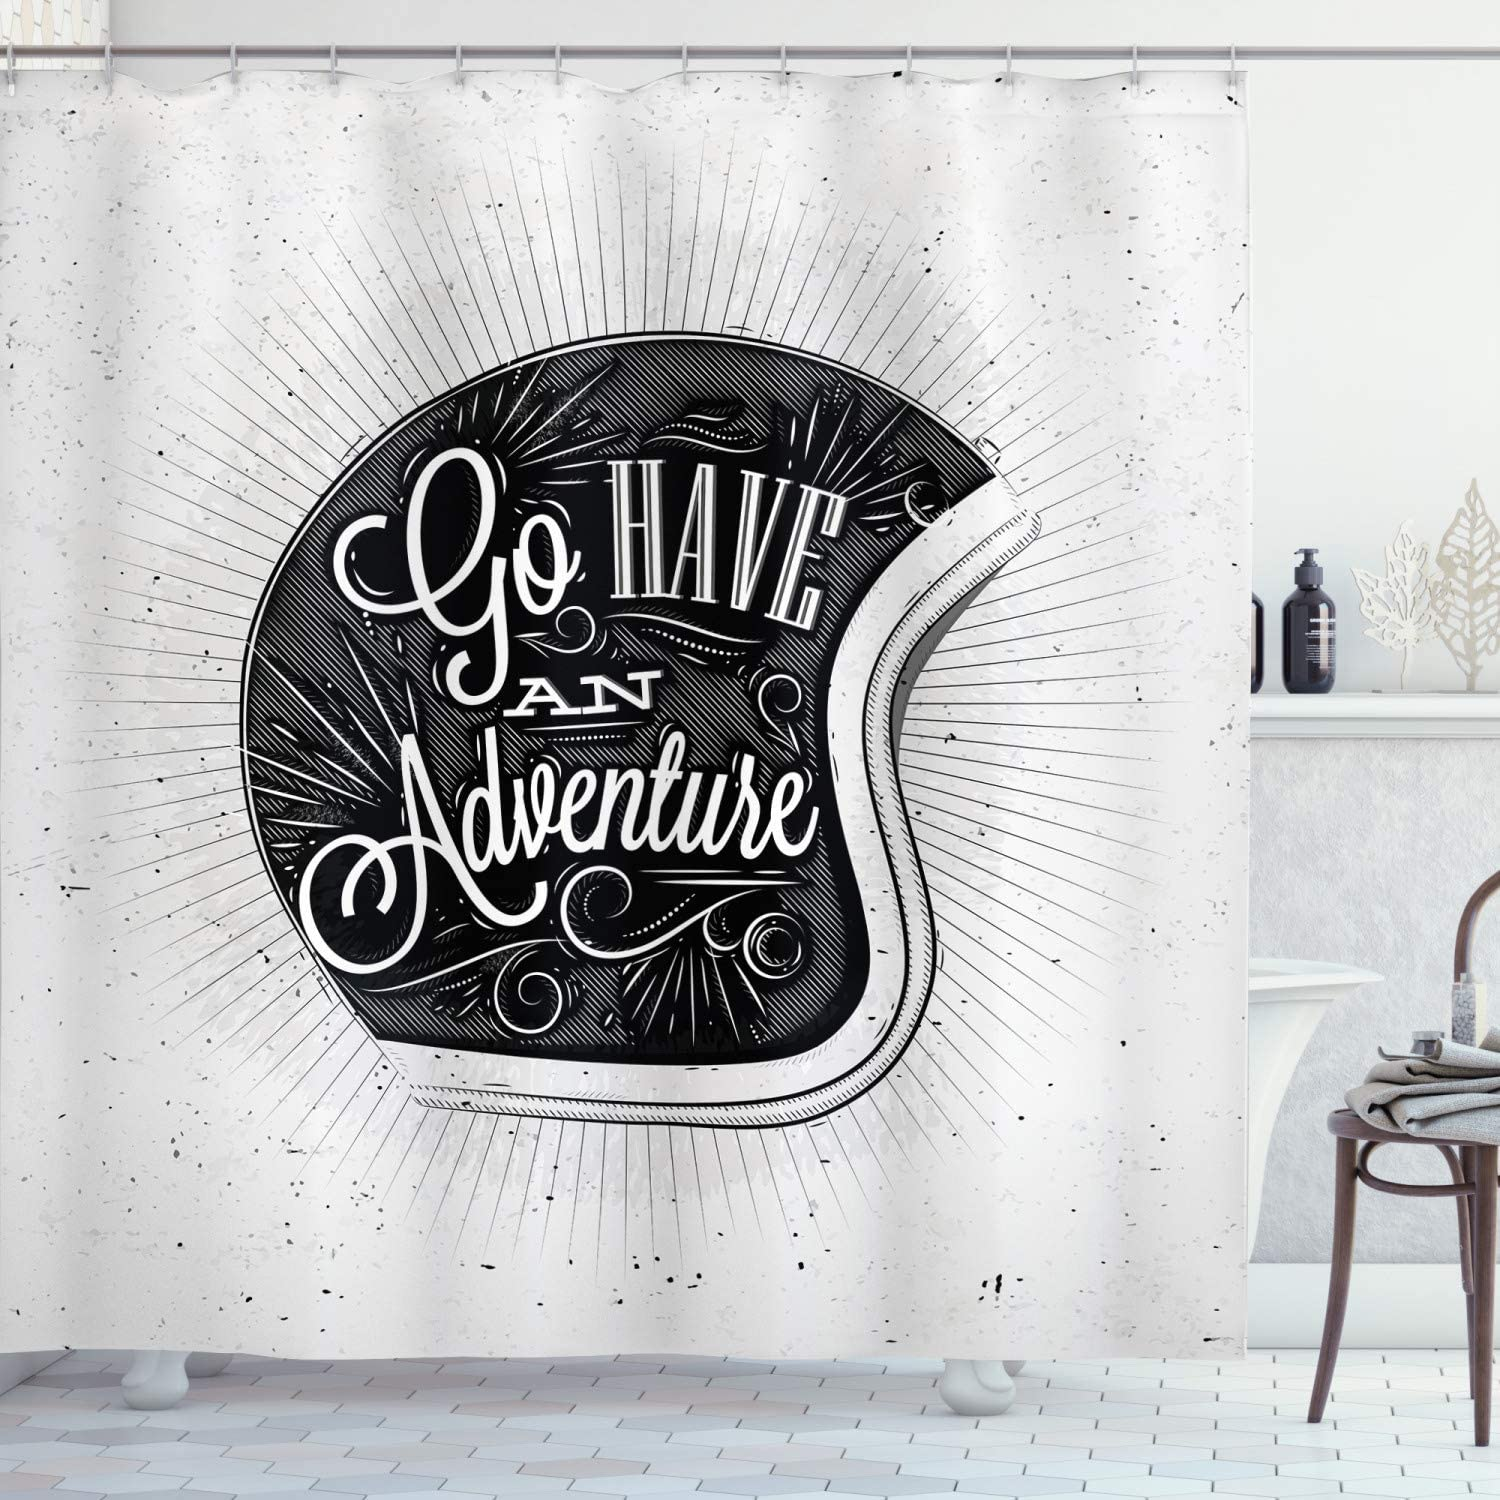 Ambesonne Vintage Decor Shower Curtain, Motorcycle Figure with Adventure Quote and Ornate Lines Contemporary New Graphic, Fabric Bathroom Decor Set with Hooks, 70 Inches, Grey